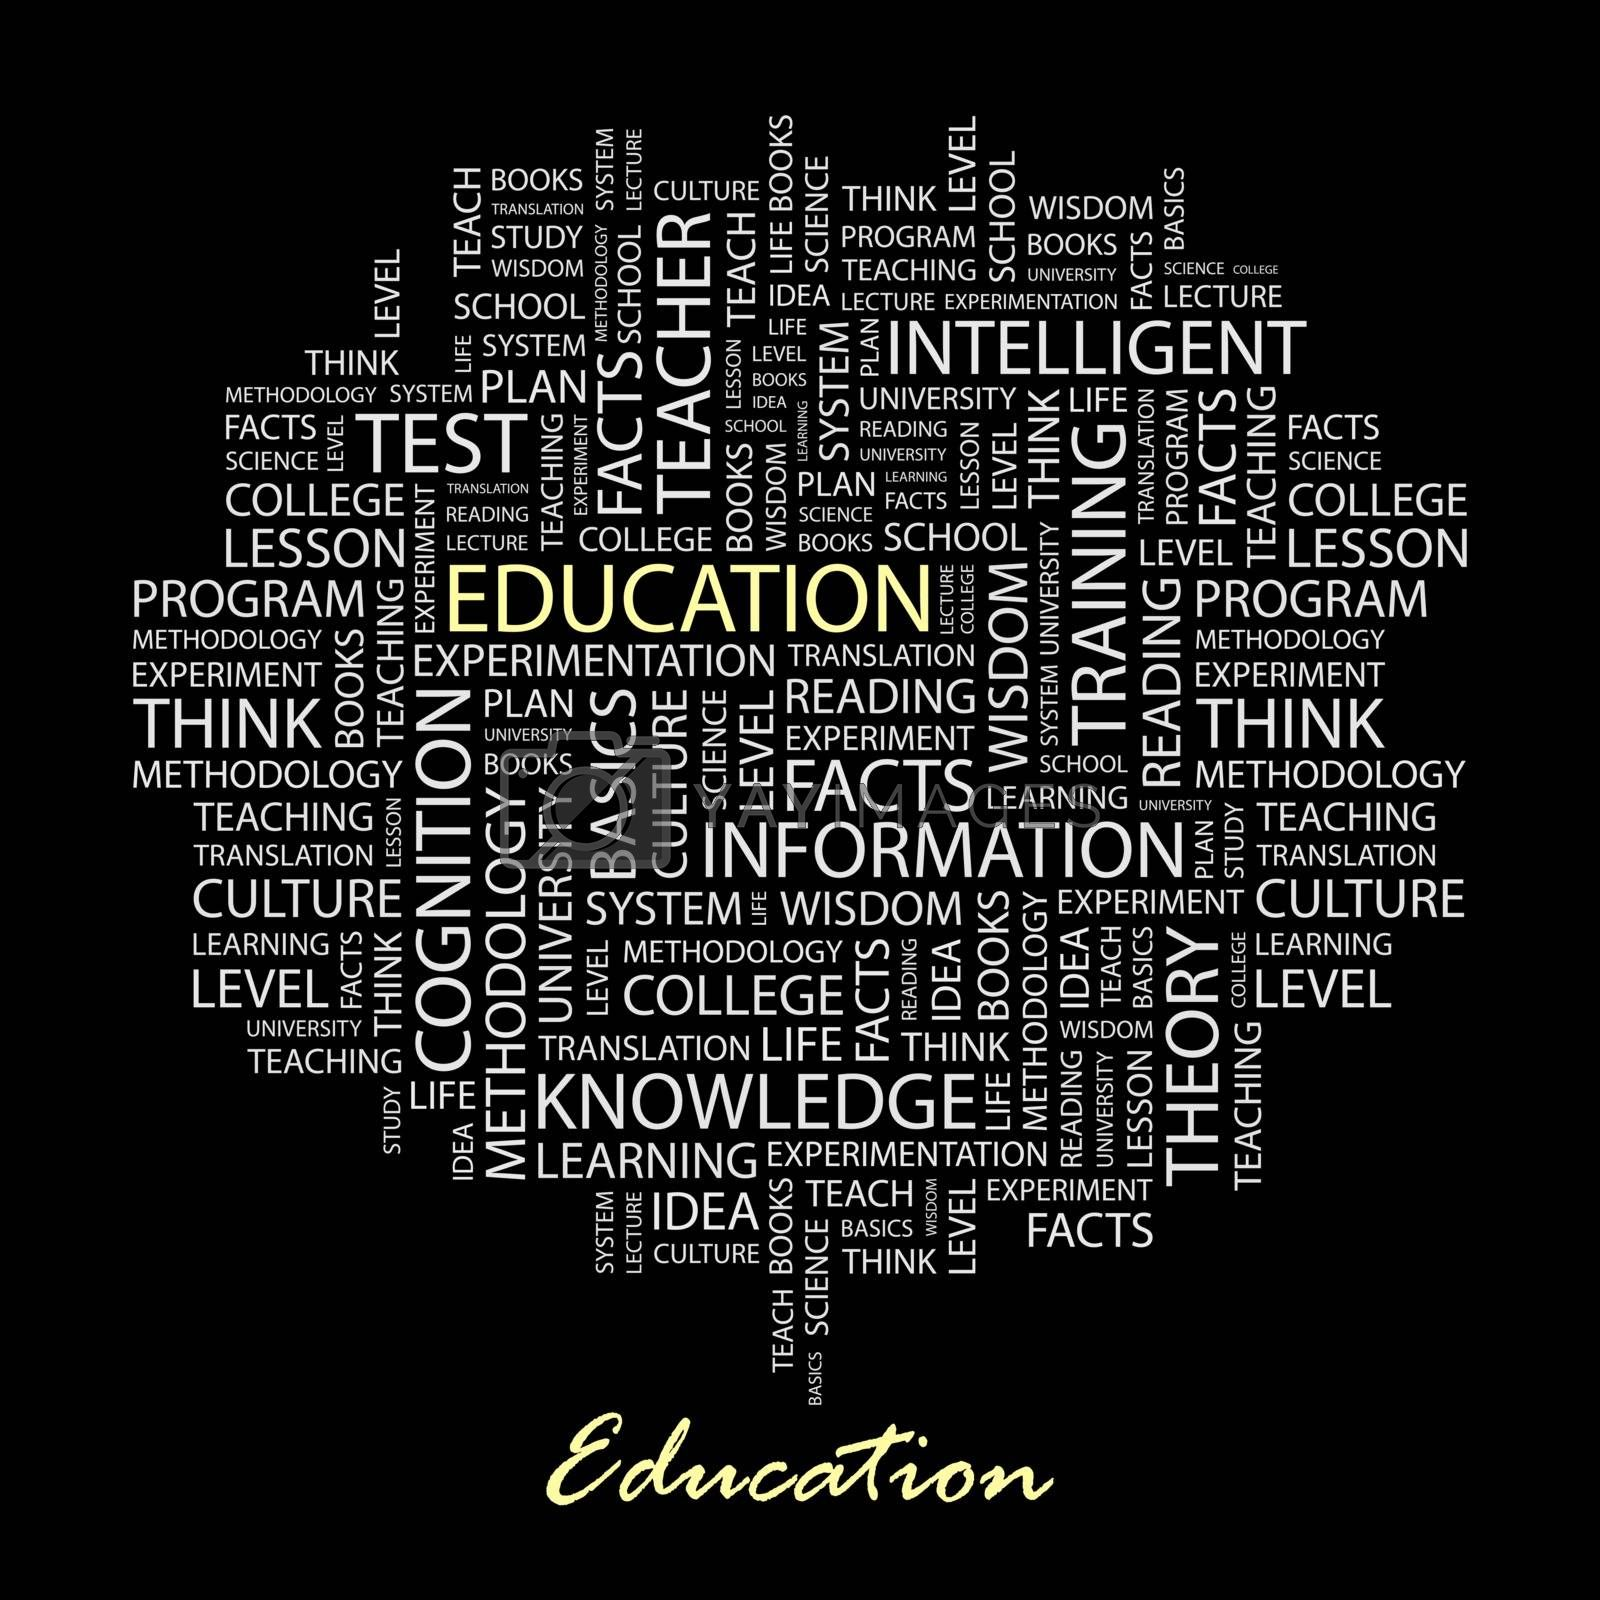 EDUCATION. Word cloud illustration. Tag cloud concept collage.